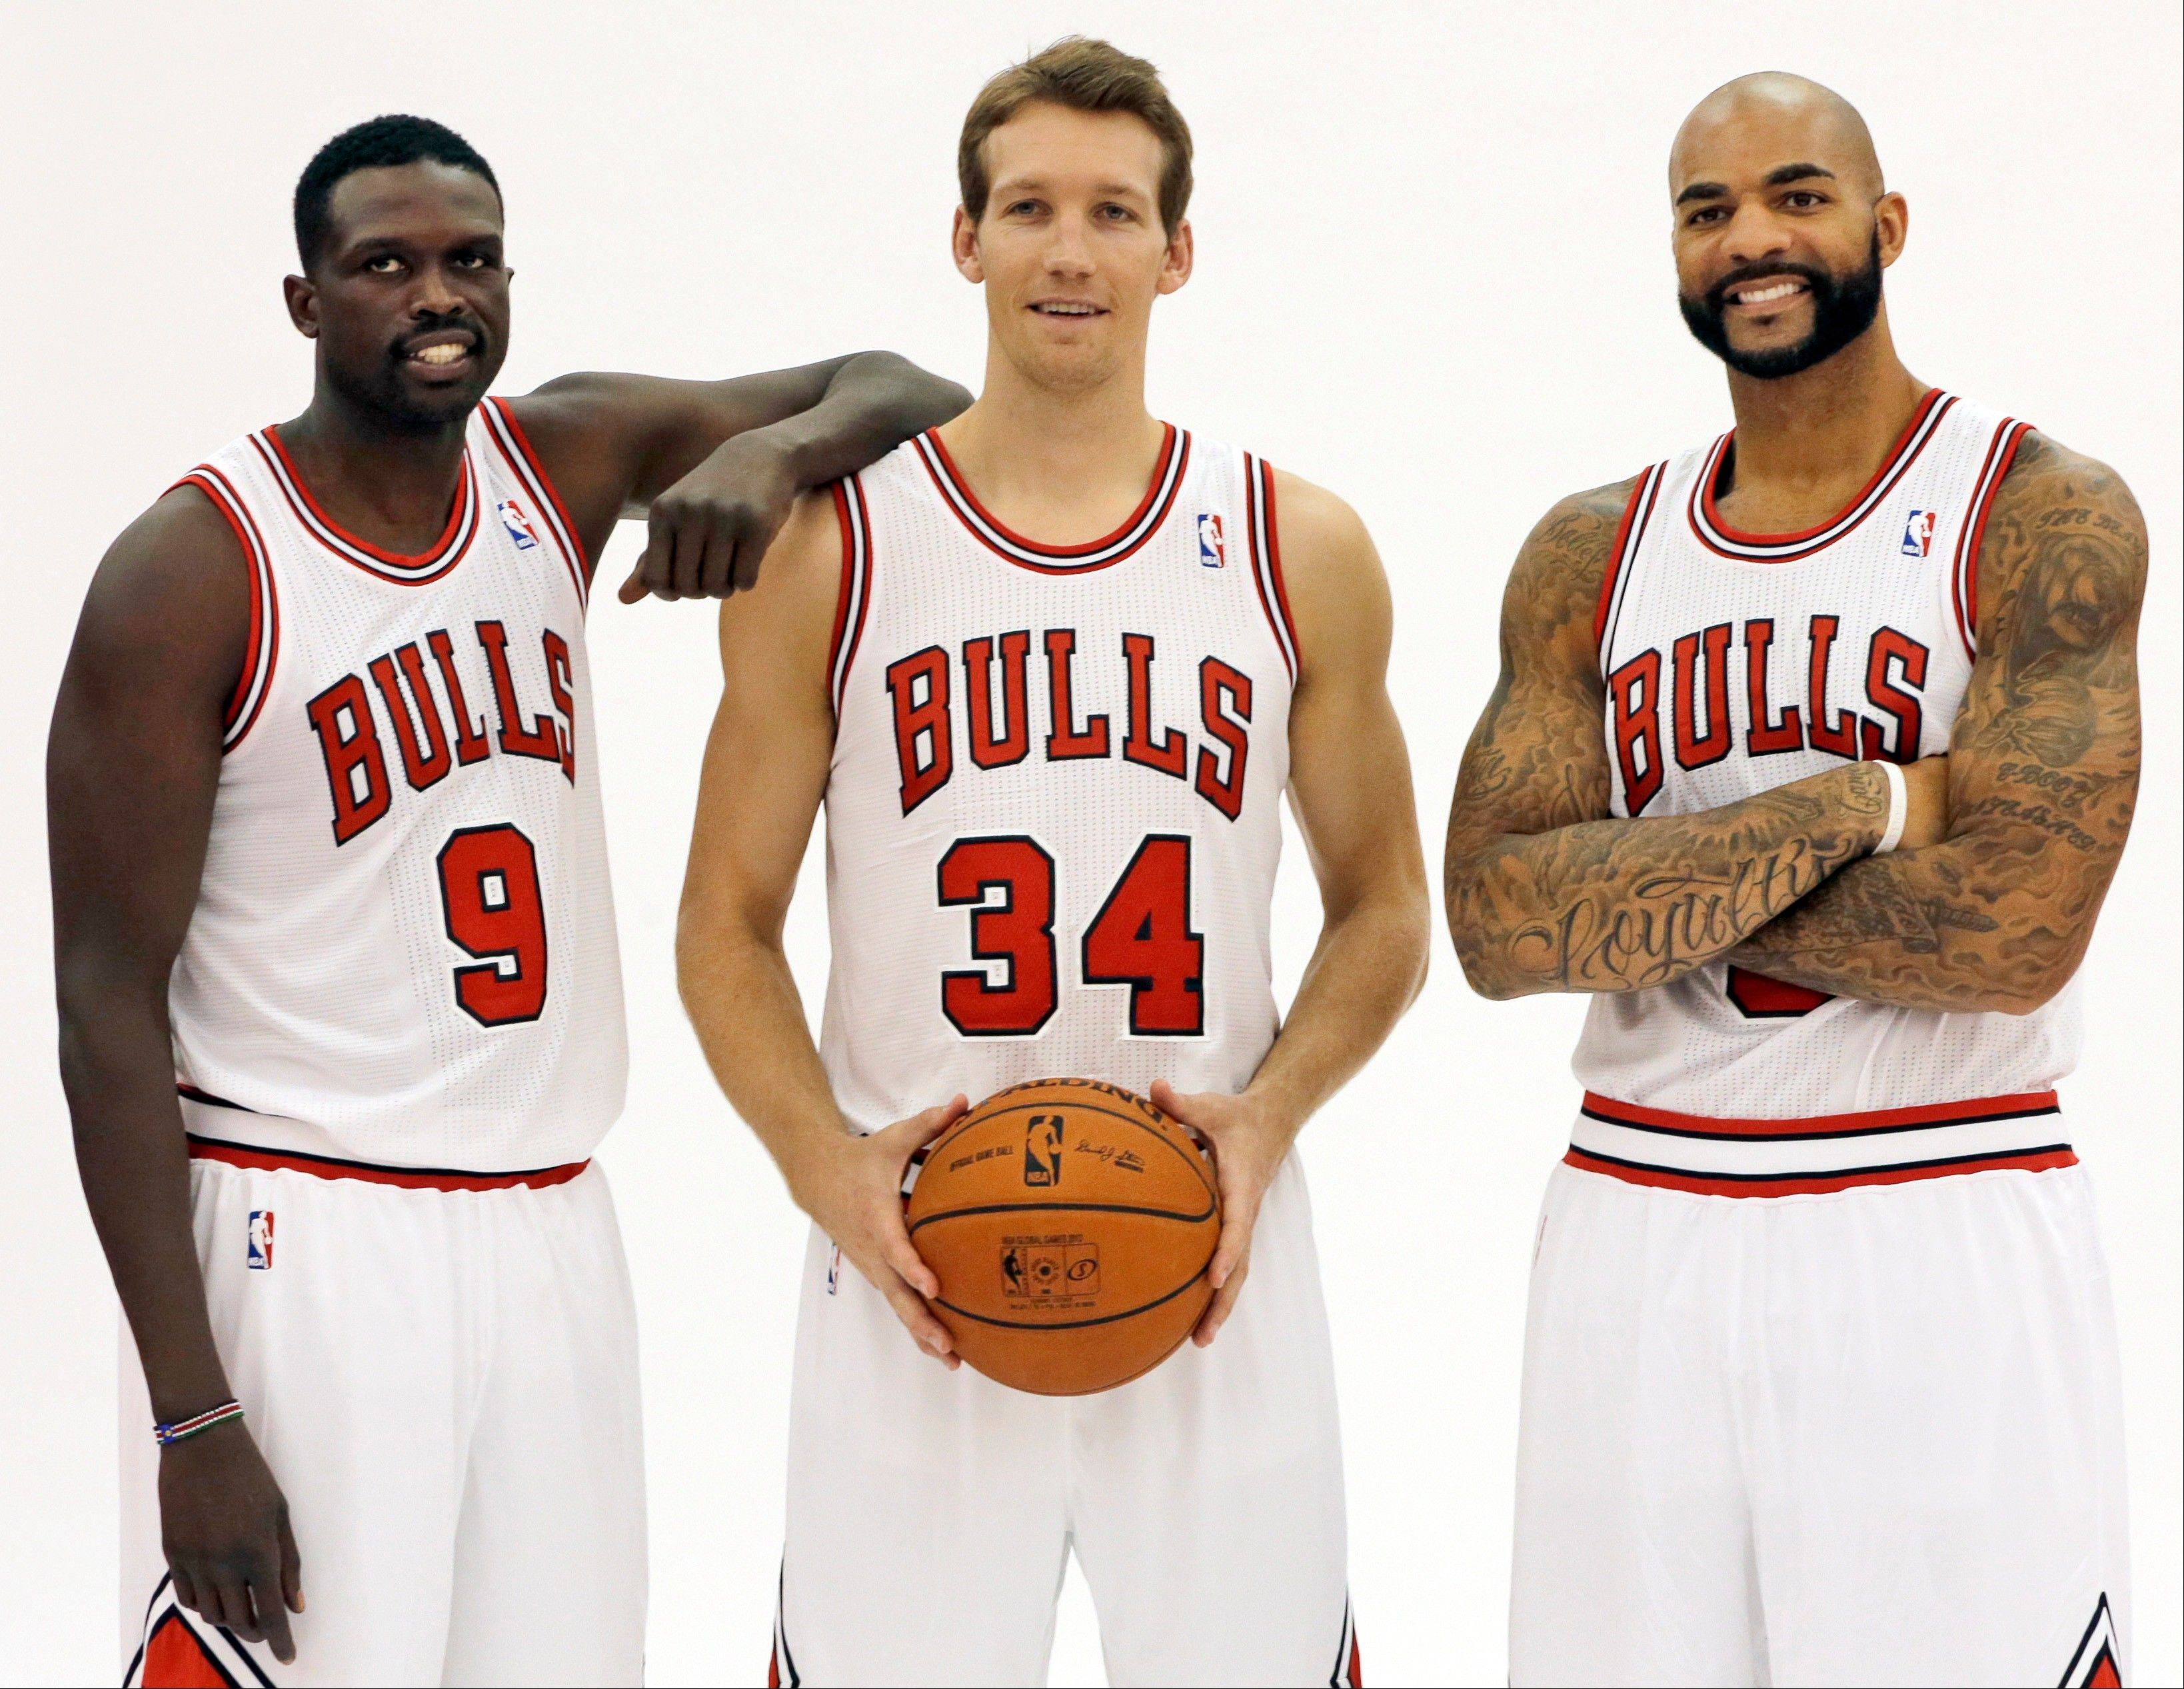 New Bulls acquisition Mike Dunleavy, center, poses with Luol Deng, left, and Carlos Boozer during media day Friday at the Sheri L. Berto Center on Friday in Deerfield.